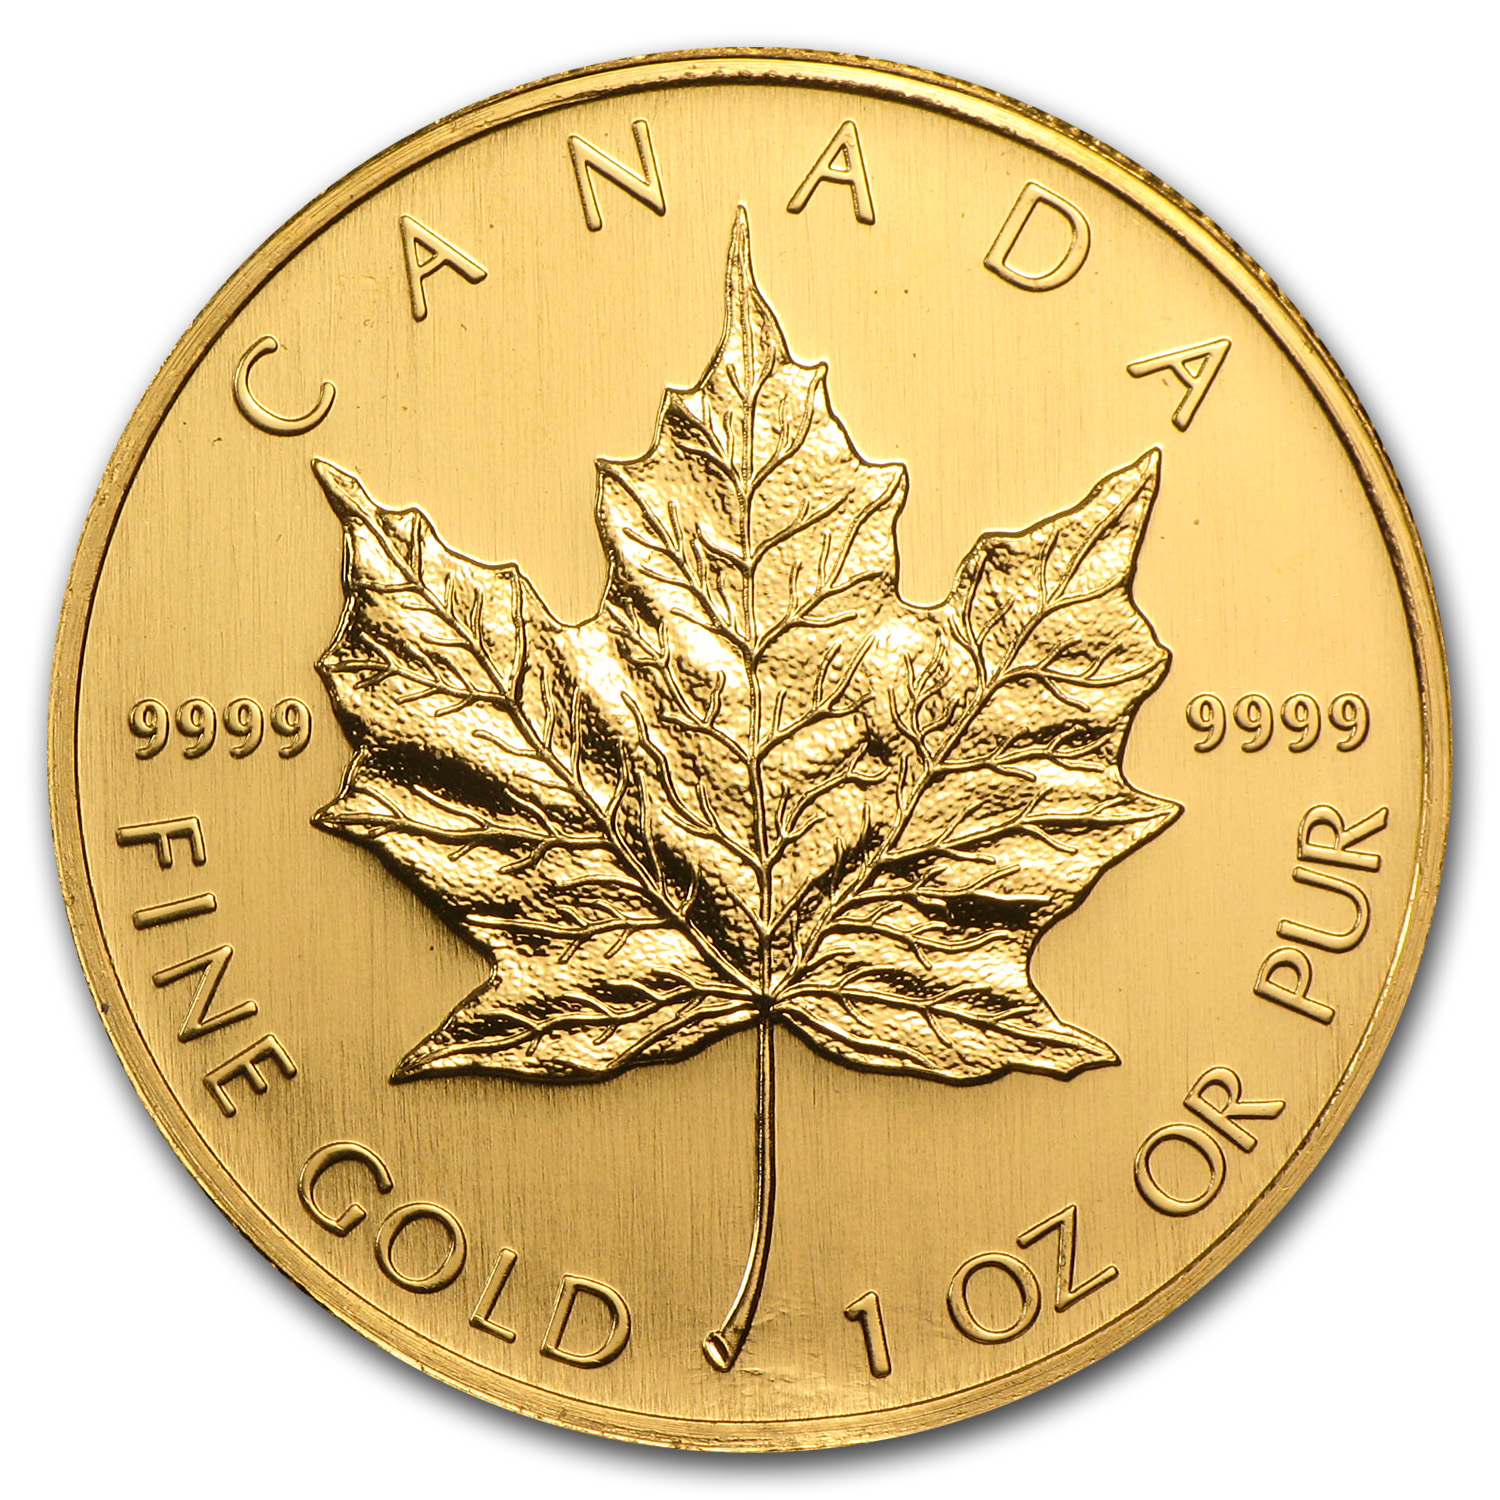 2006 1 oz Gold Canadian Maple Leaf - Brilliant Uncirculated